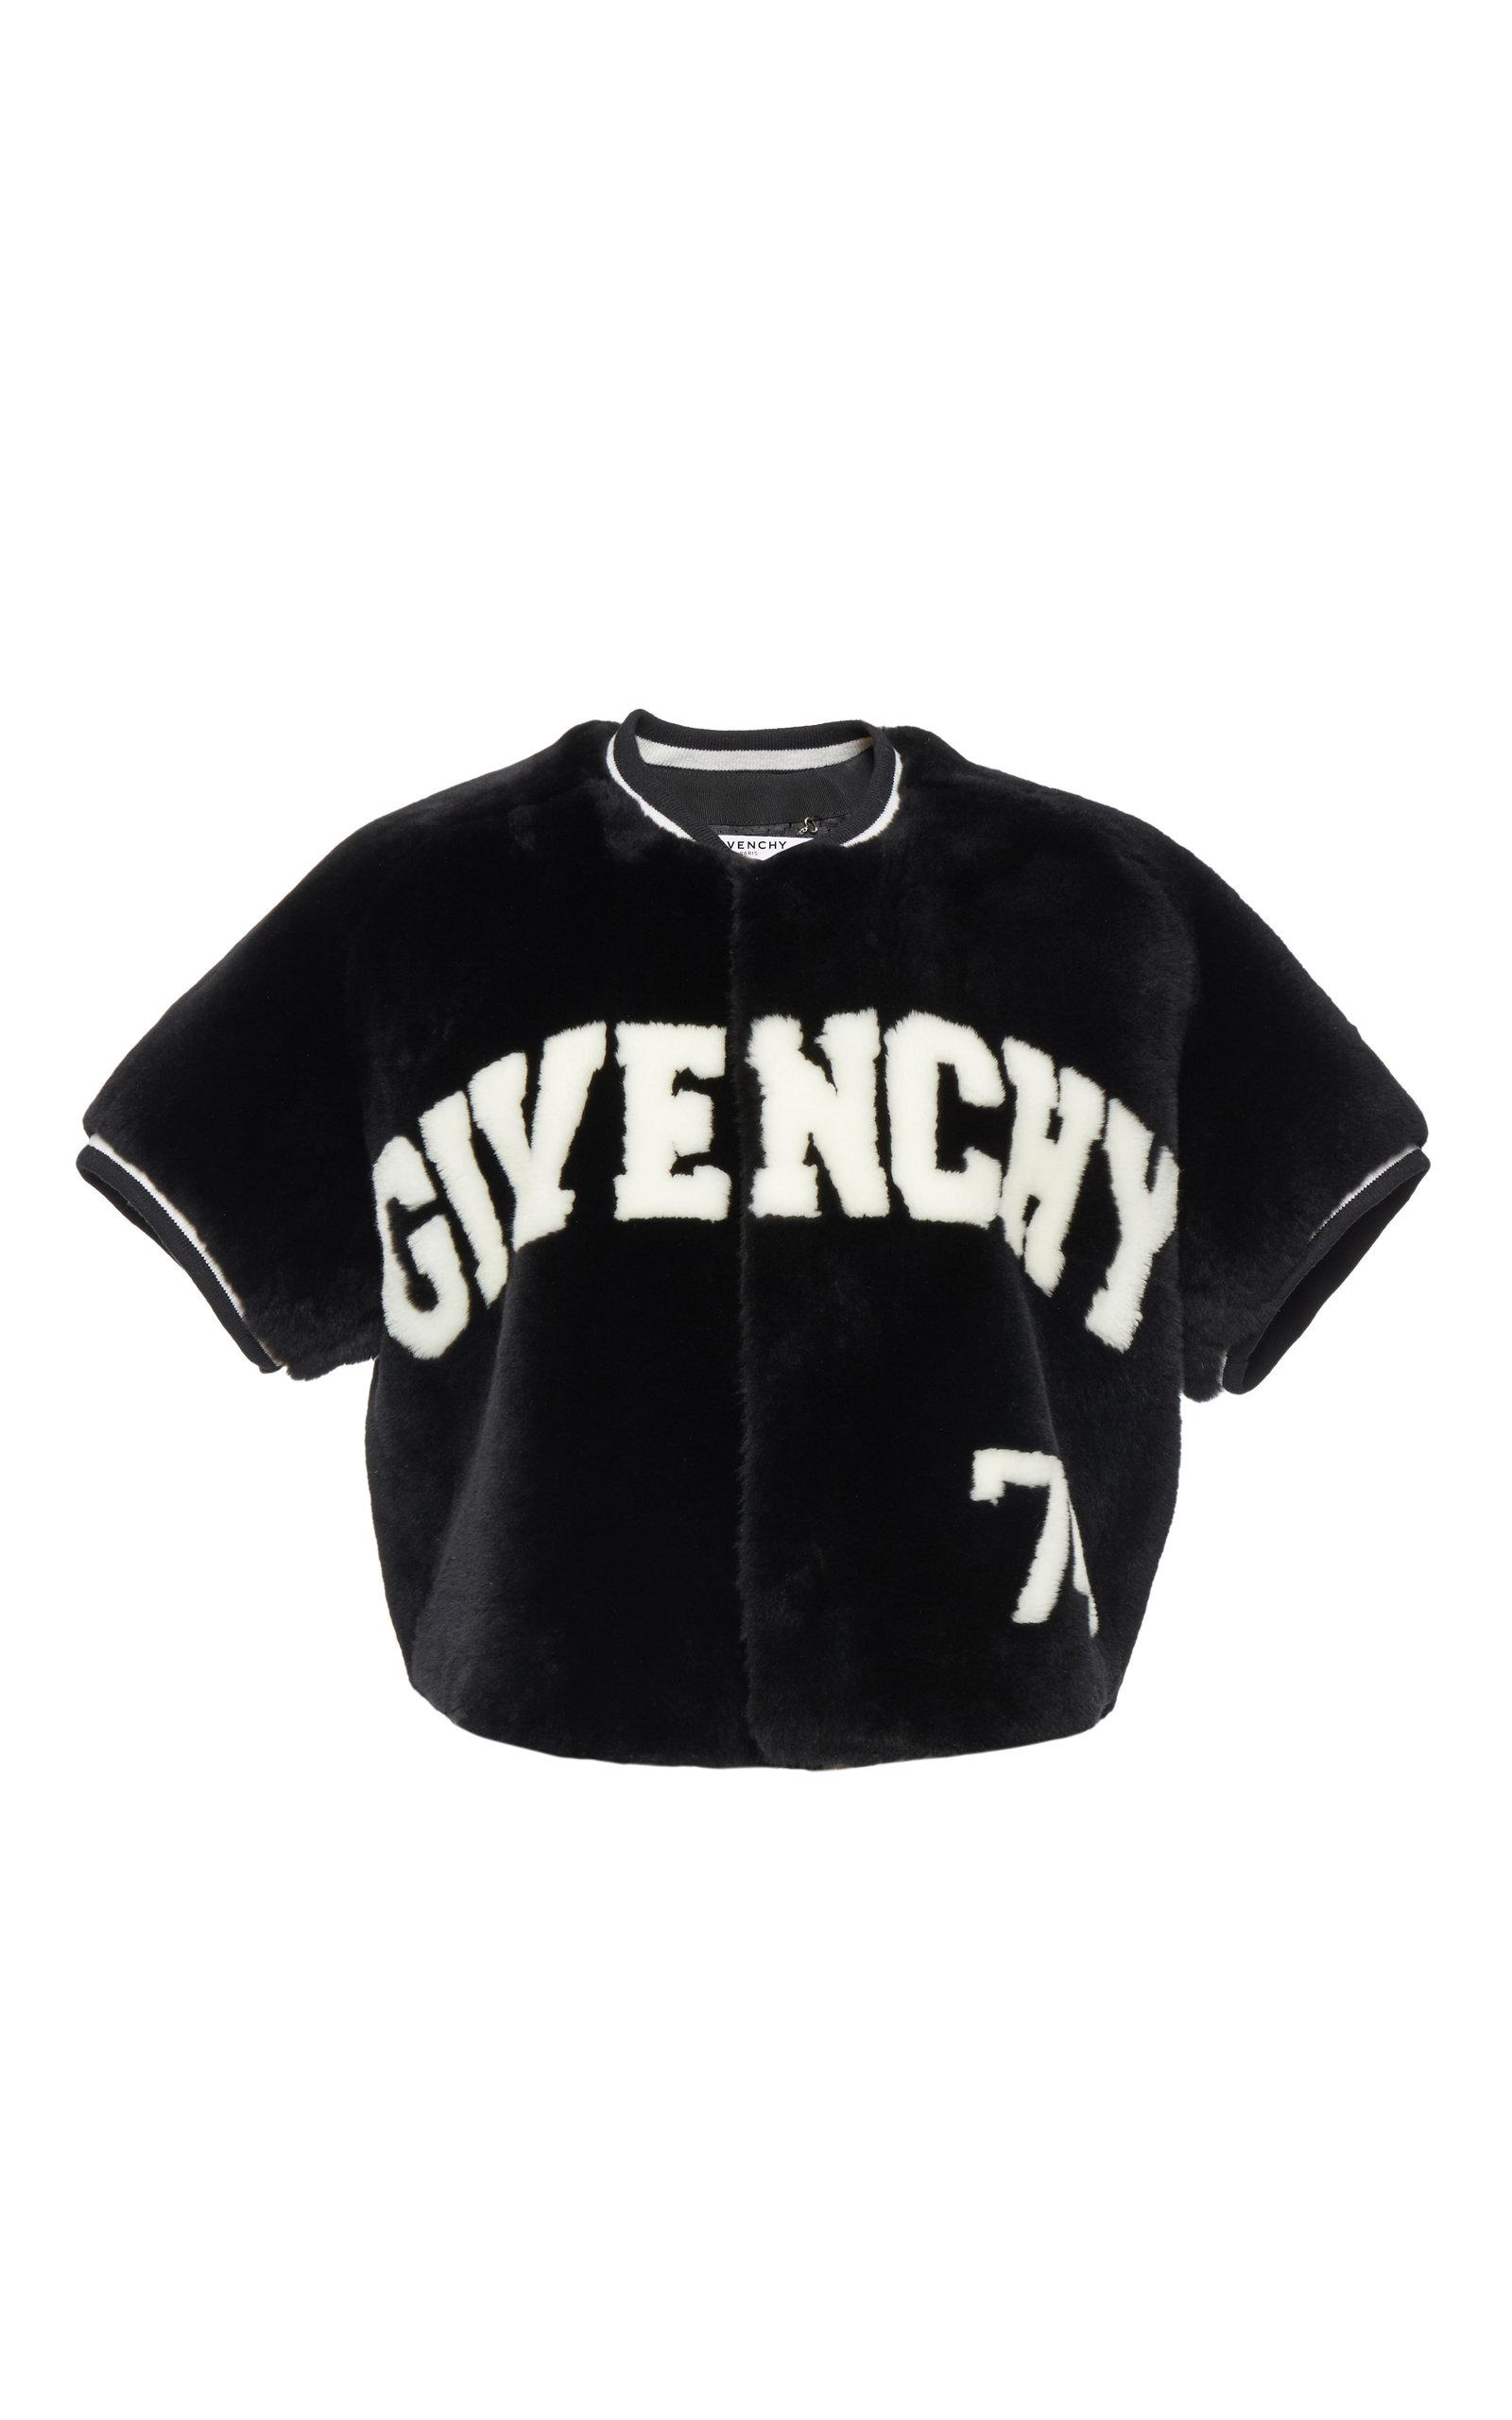 Givenchy Cropped Fur Jacket In Black/White